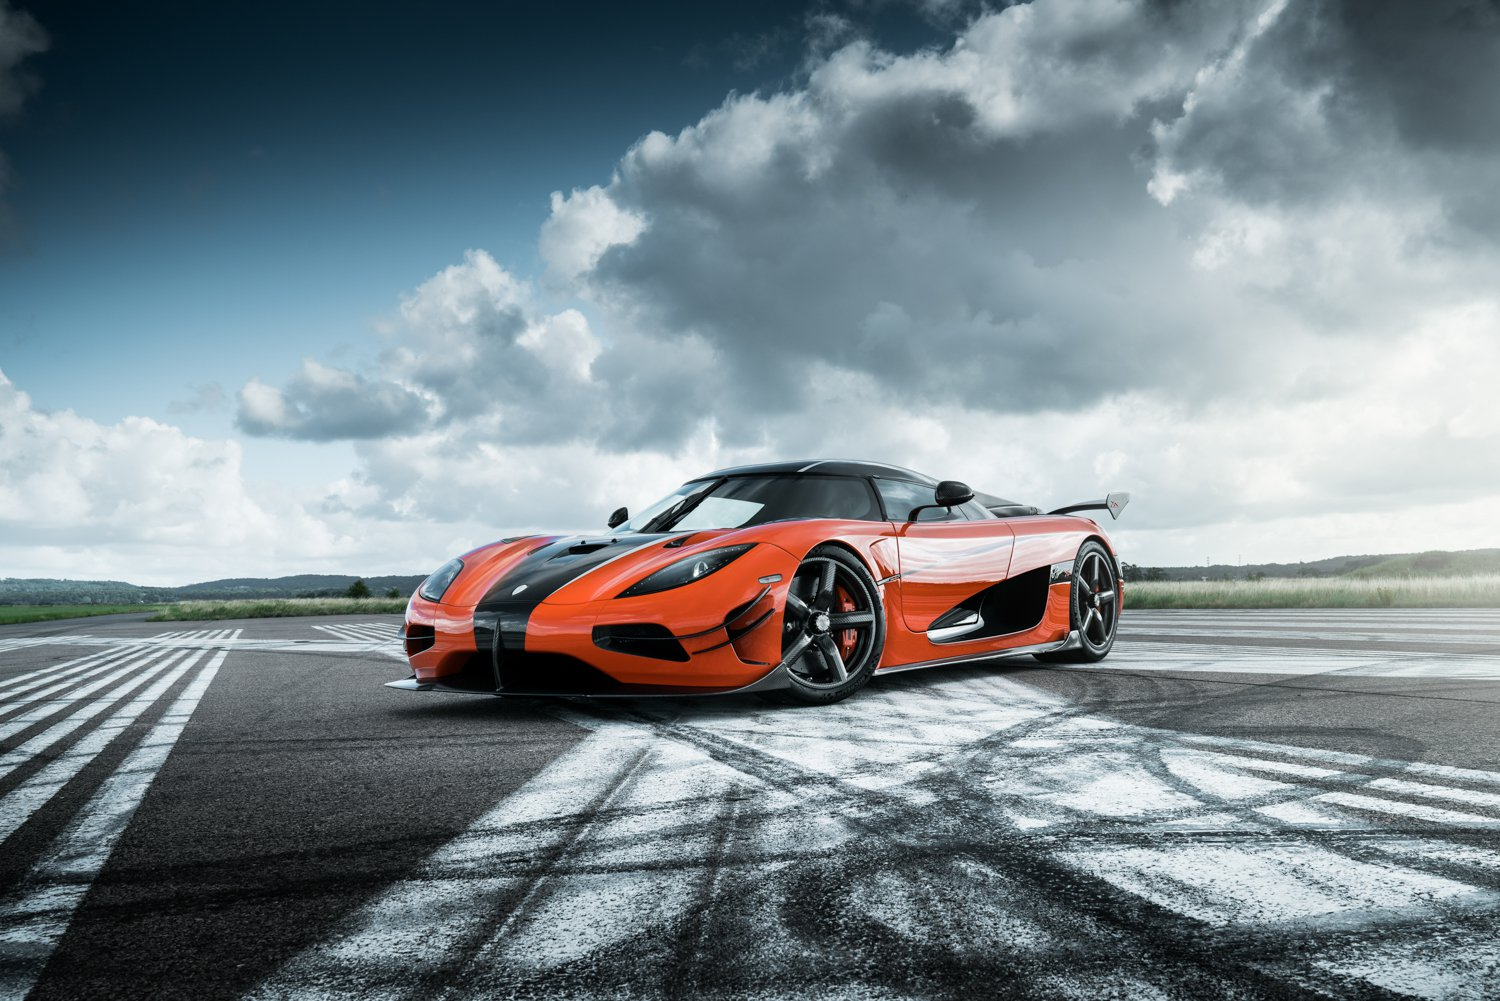 THE KOENIGSEGG AGERA RS IS NO LONGER IN PRODUCTION